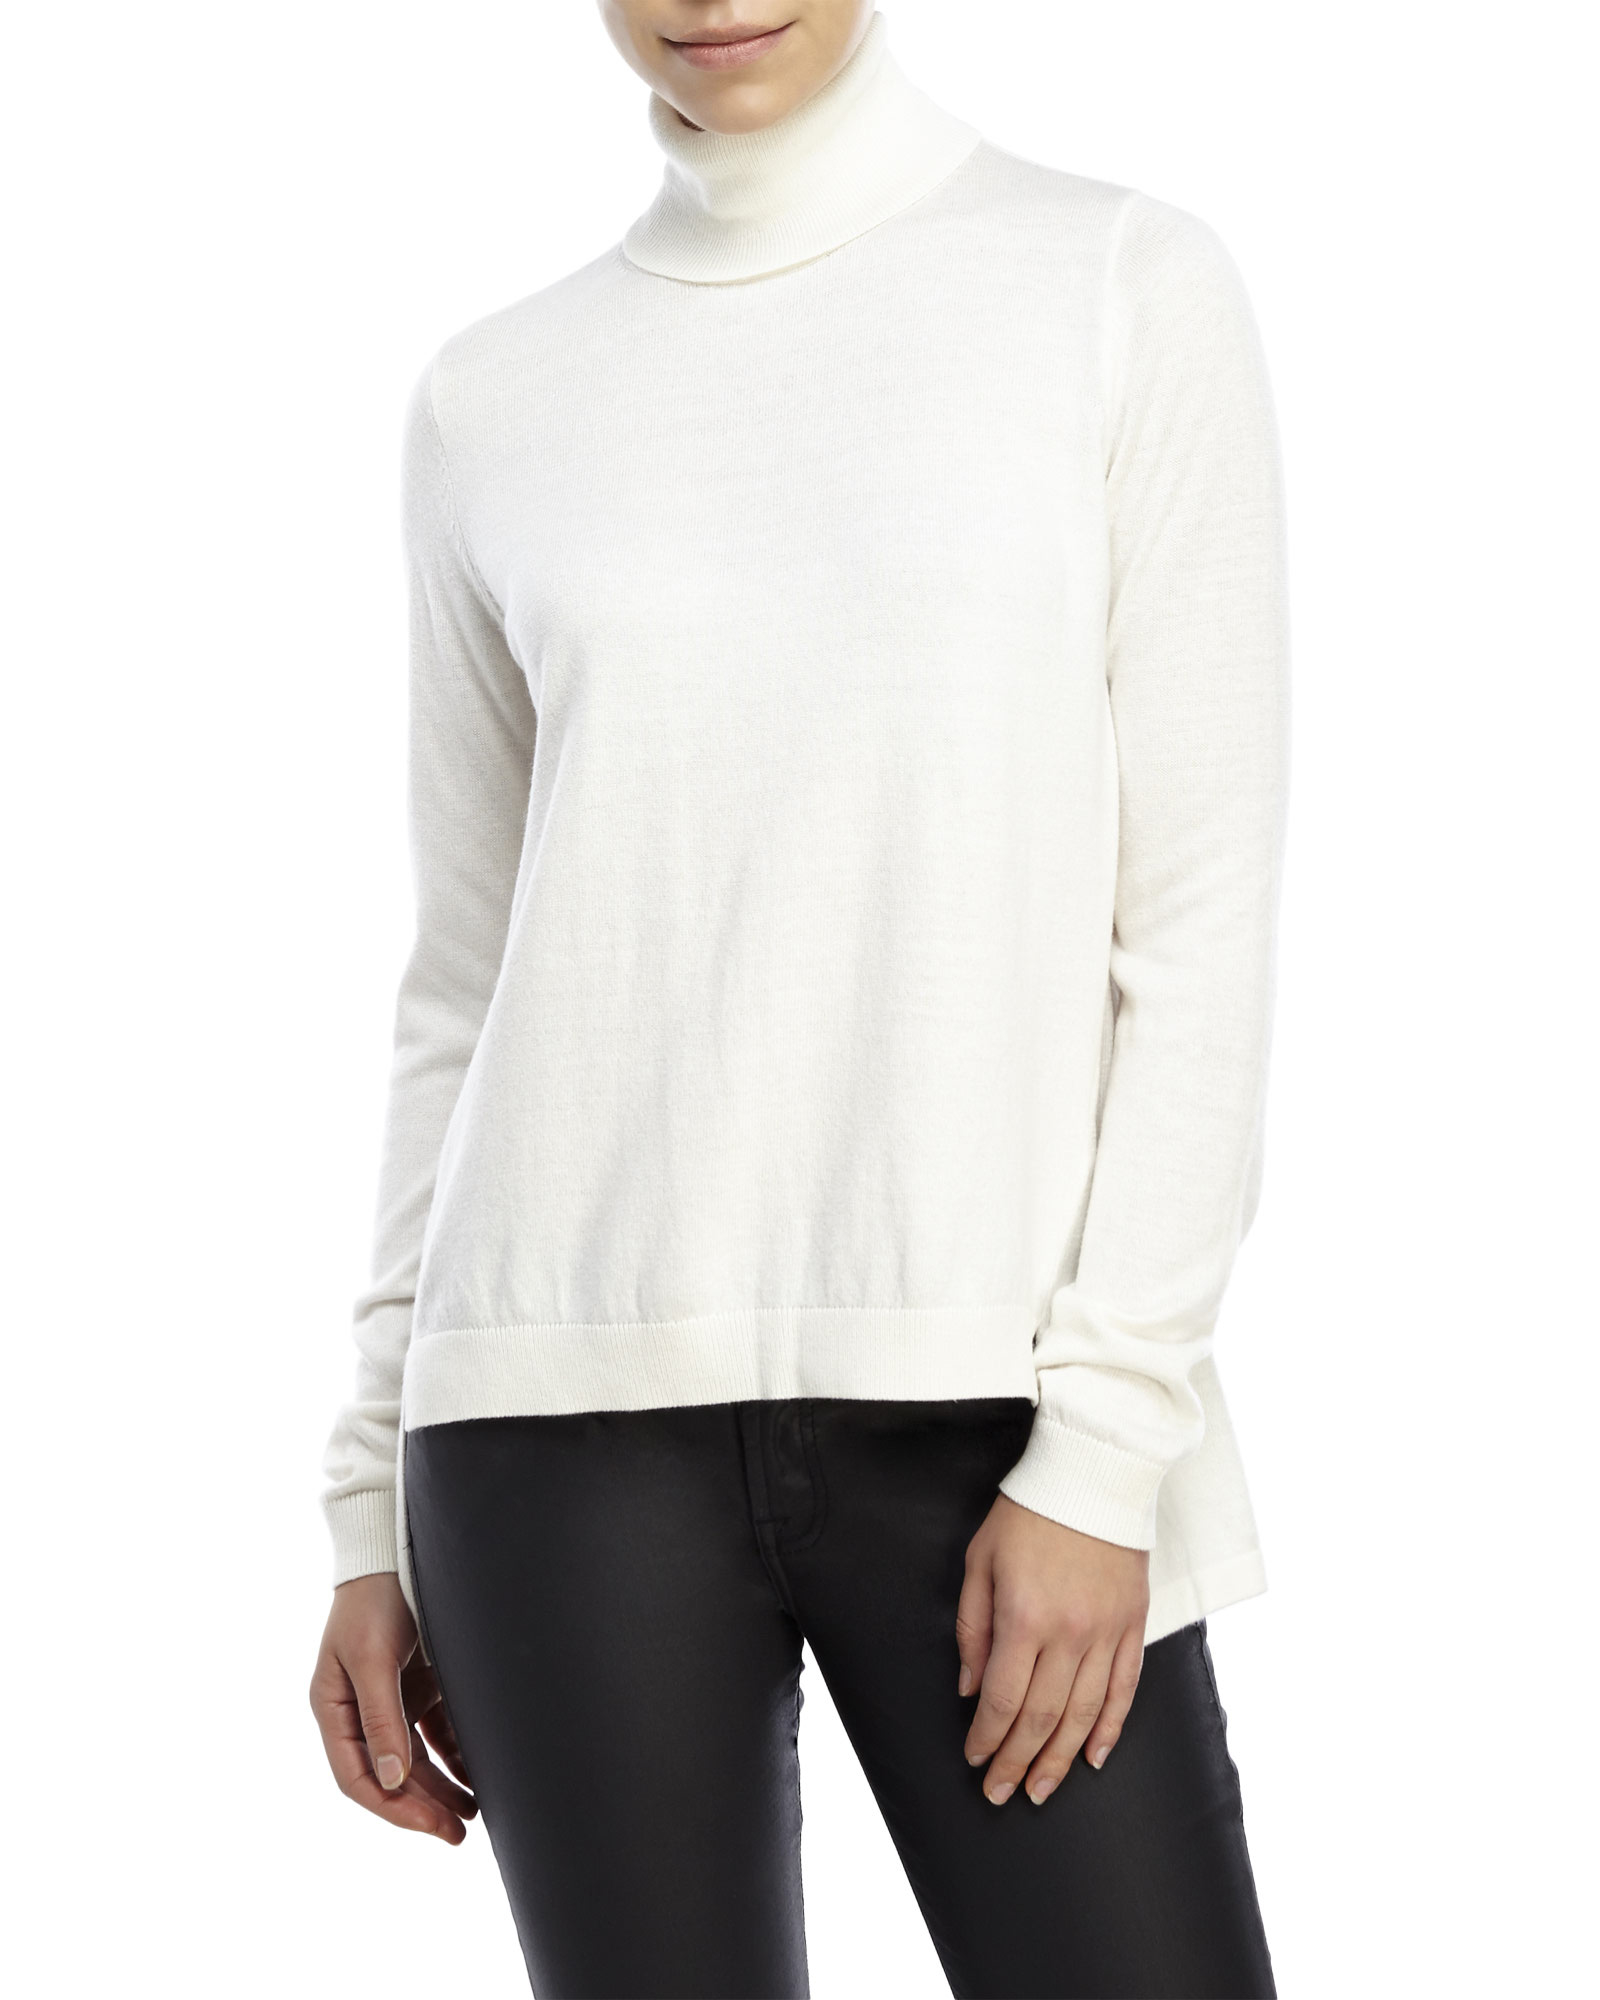 French connection Bambino Knit Turtleneck Sweater in White   Lyst